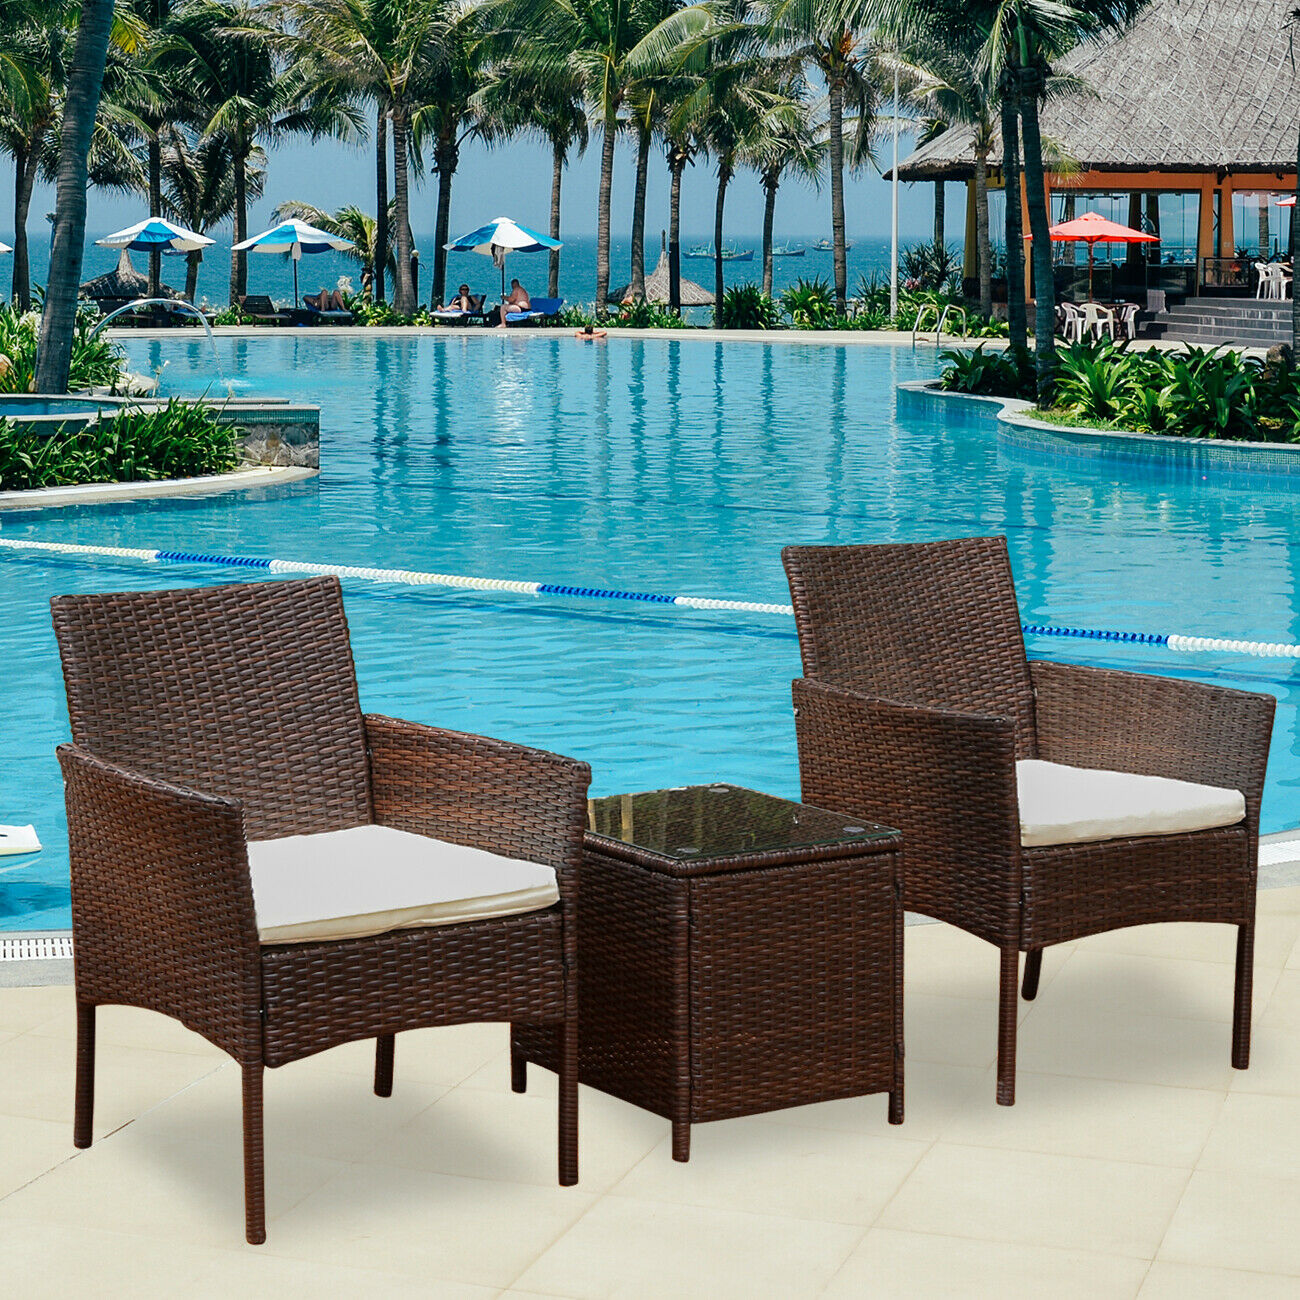 Garden Furniture - Set 3 Rattan Garden Furniture Set Patio Outdoor Table Chairs Conservatory